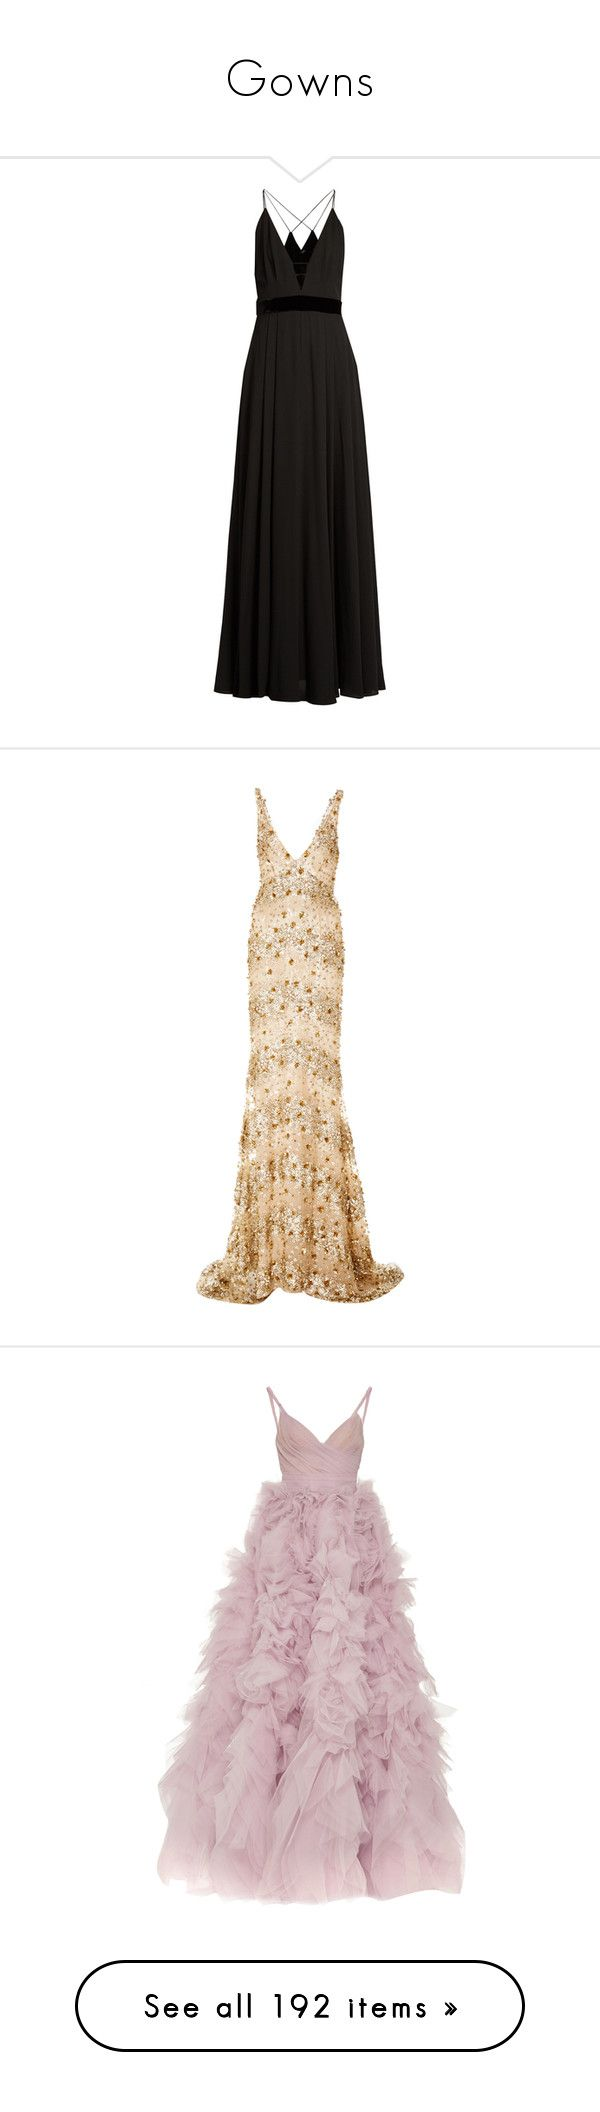 """""""Gowns"""" by isthelastofus ❤ liked on Polyvore featuring dresses, gowns, black, evening gowns, v neck gown, metallic evening dress, evening dresses, sleeveless dress, long dresses and gold"""